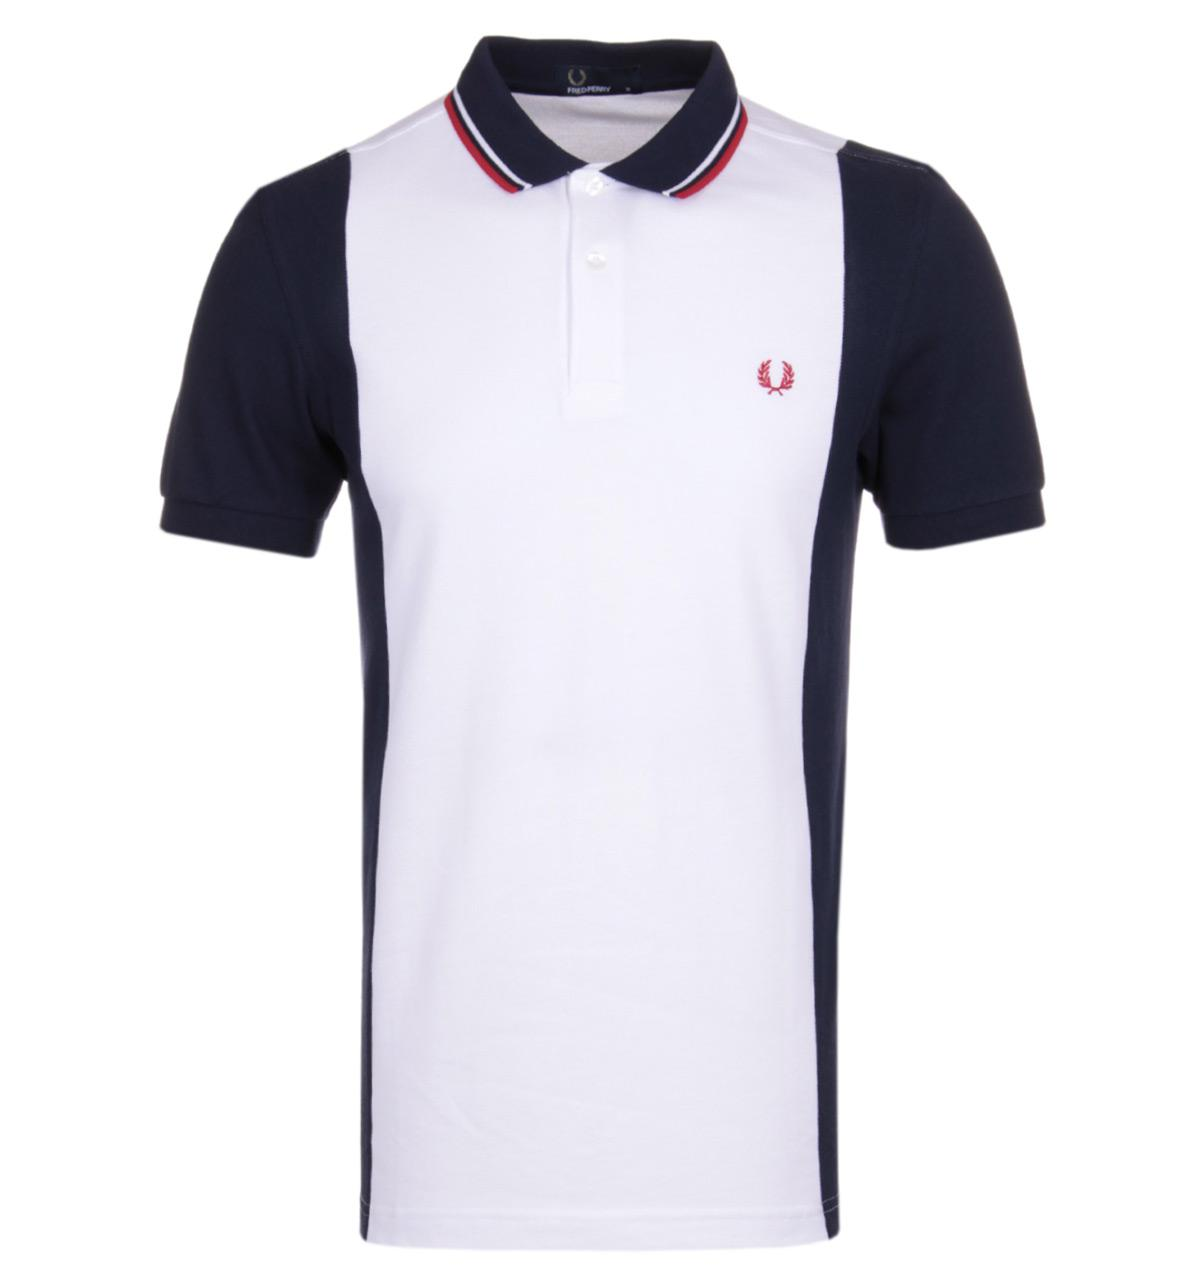 145d6256b Lyst - Fred Perry Panelled White   Carbon Blue Pique Polo Shirt in ...